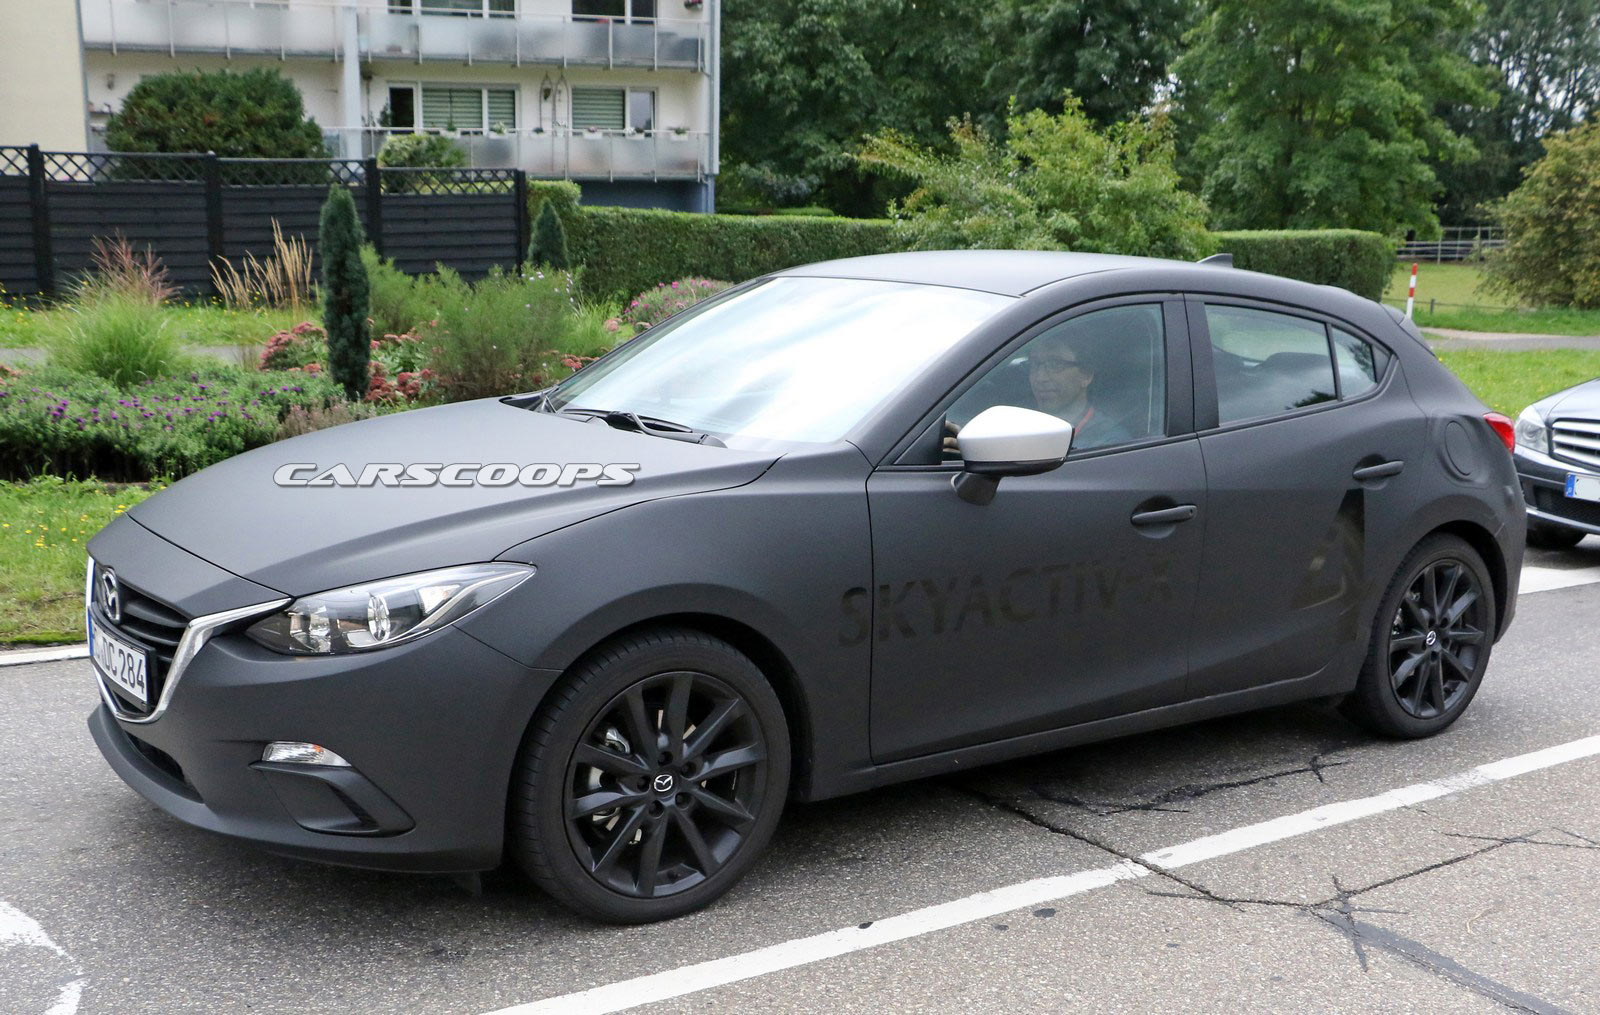 new mazda3 prototype spied with a skyactiv x engine carscoops. Black Bedroom Furniture Sets. Home Design Ideas